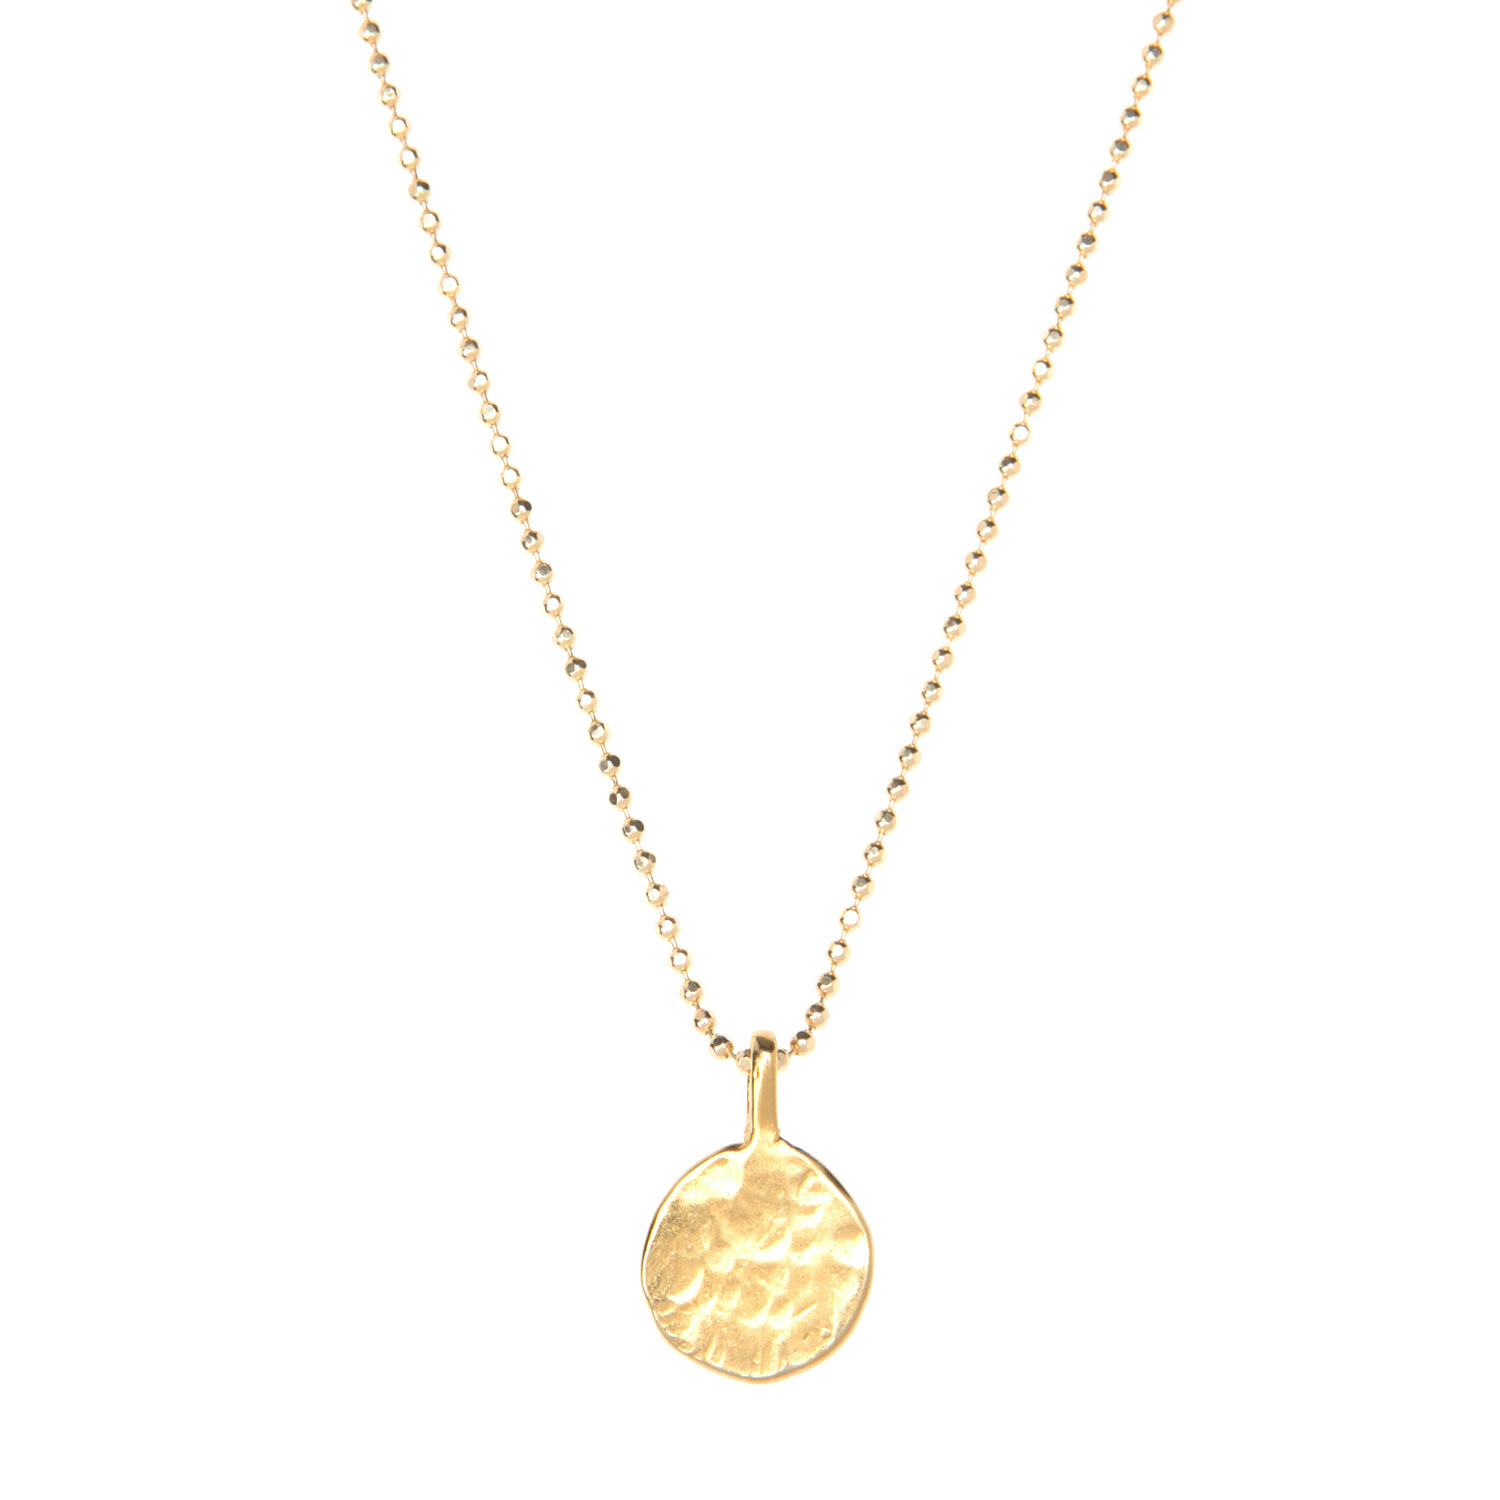 Gold Vermeil Hammered Disc Charm Necklace